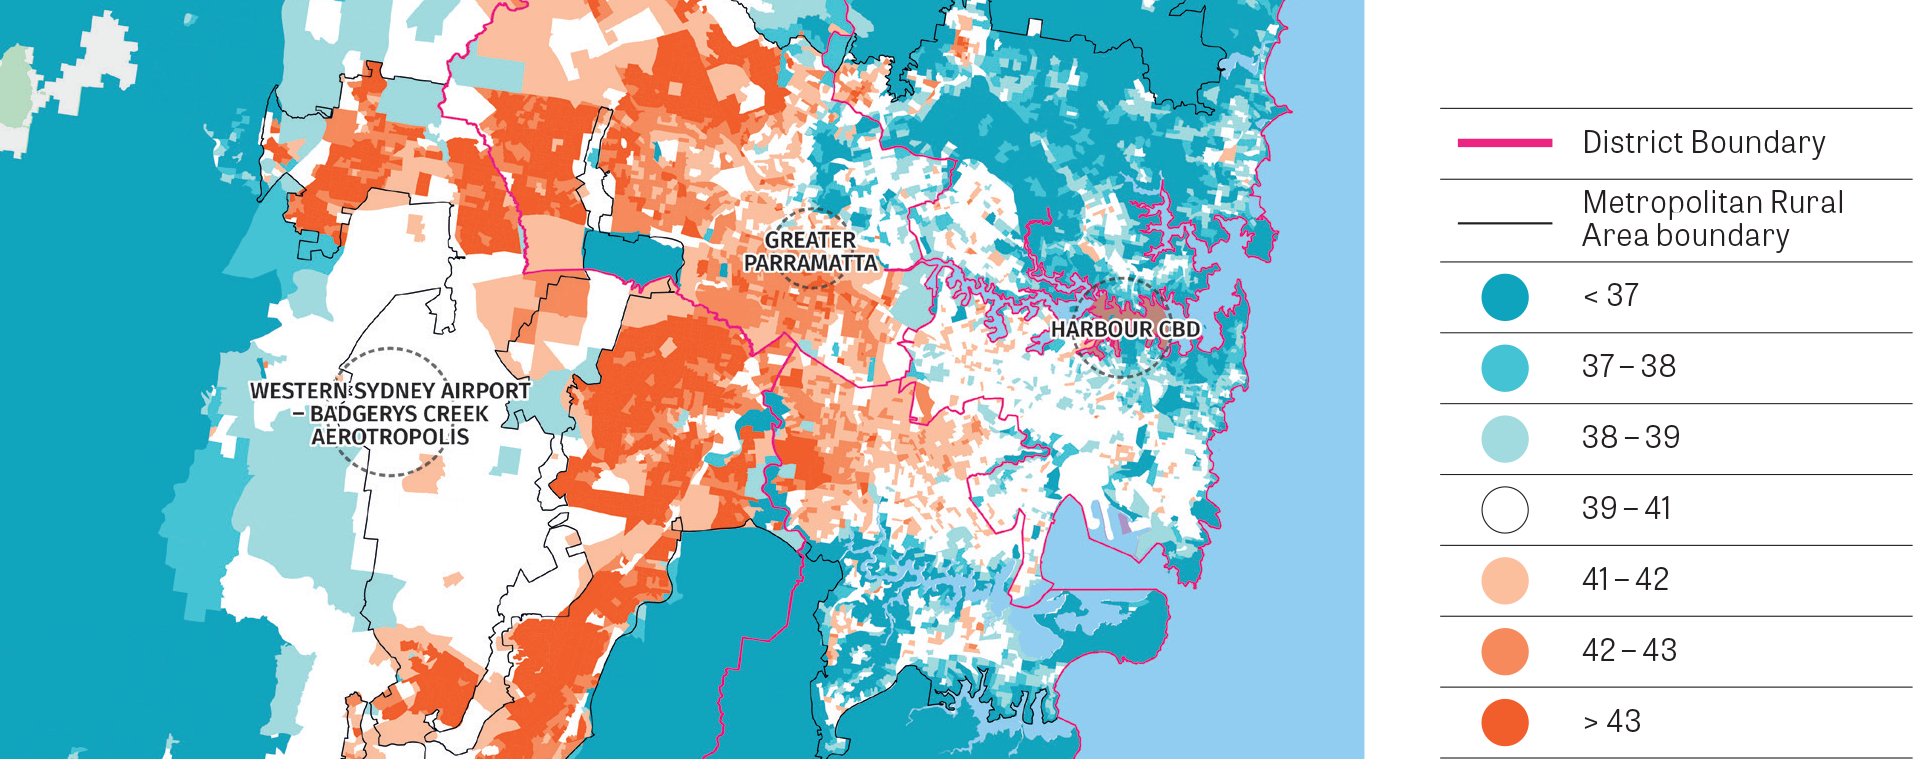 A stylised map focussed on the main urban areas in the Greater Sydney Region showing the percentage of tree canopy cover at year 2011.